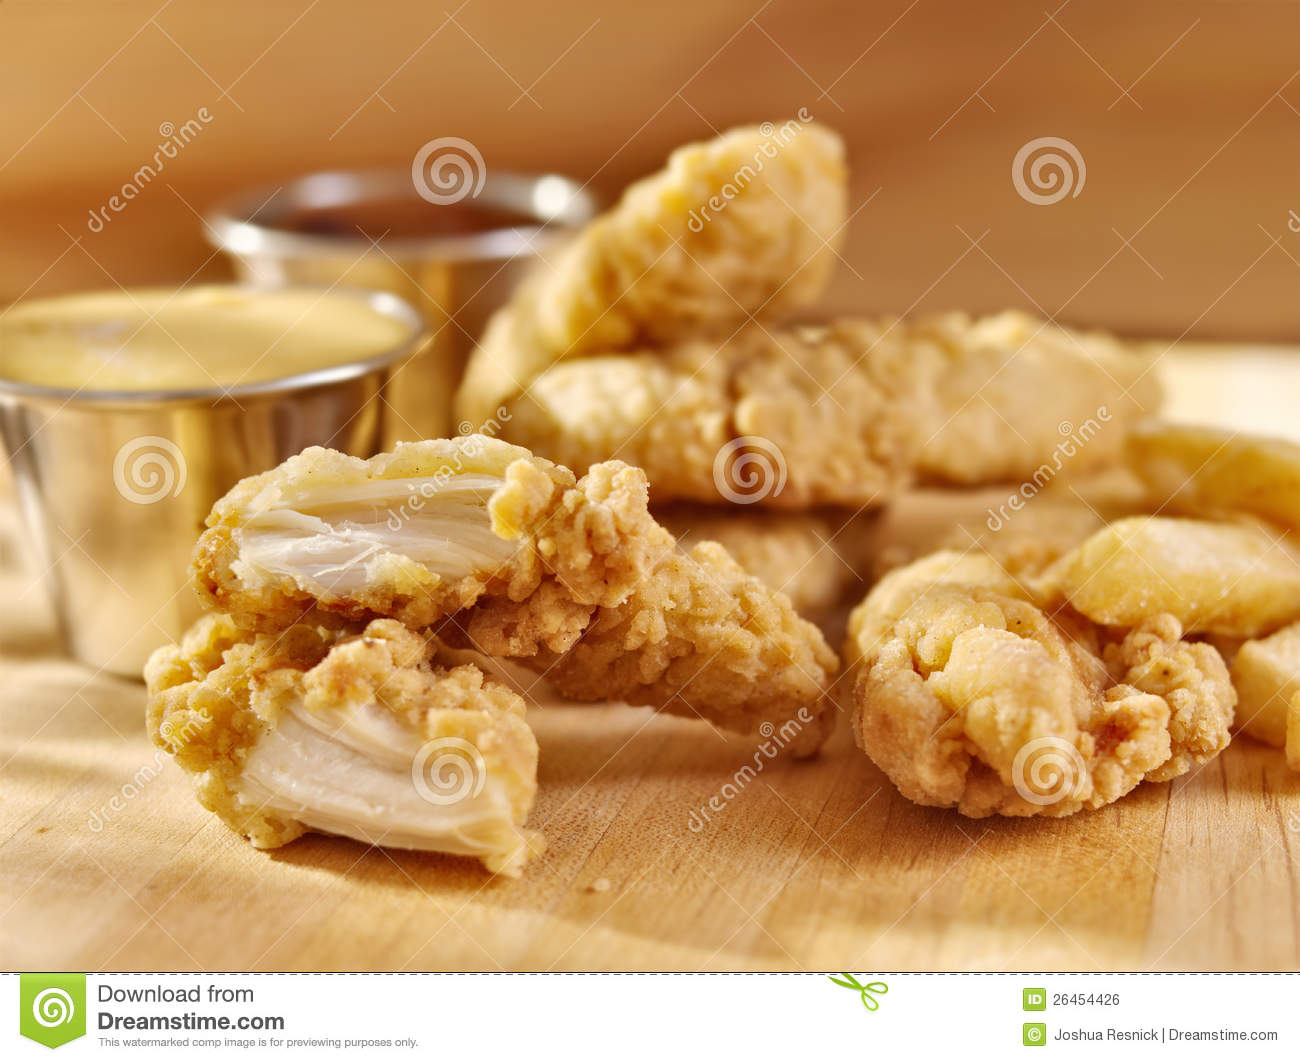 Fast Food Fried Chicken Strips. Royalty Free Stock Image - Image ...